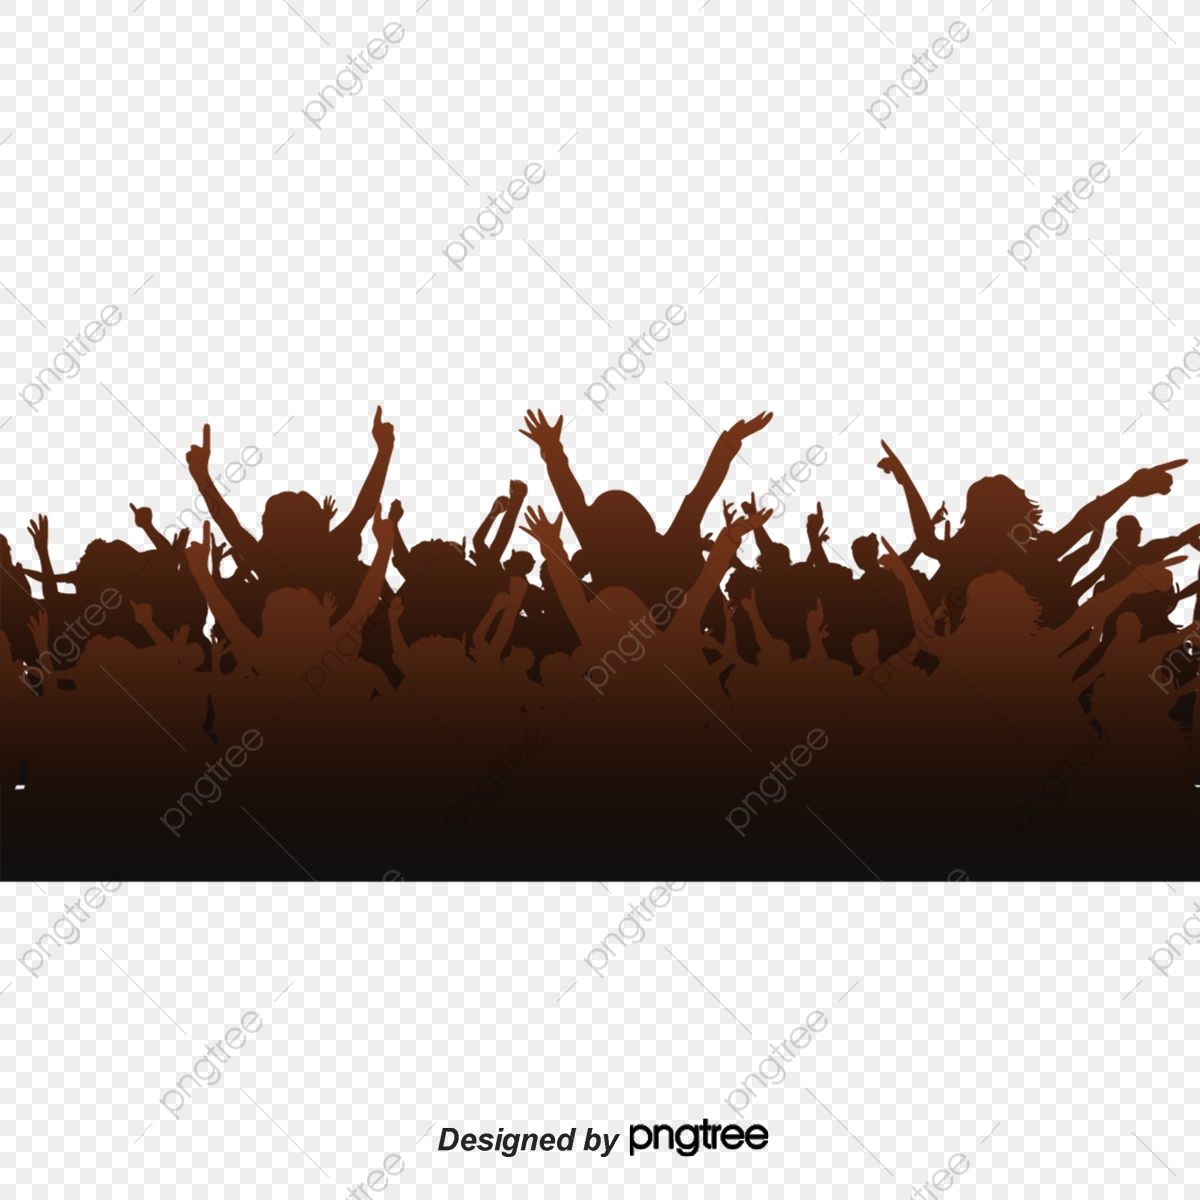 Crowd, Concert, Cheer, People PNG Transparent Clipart Image and PSD.